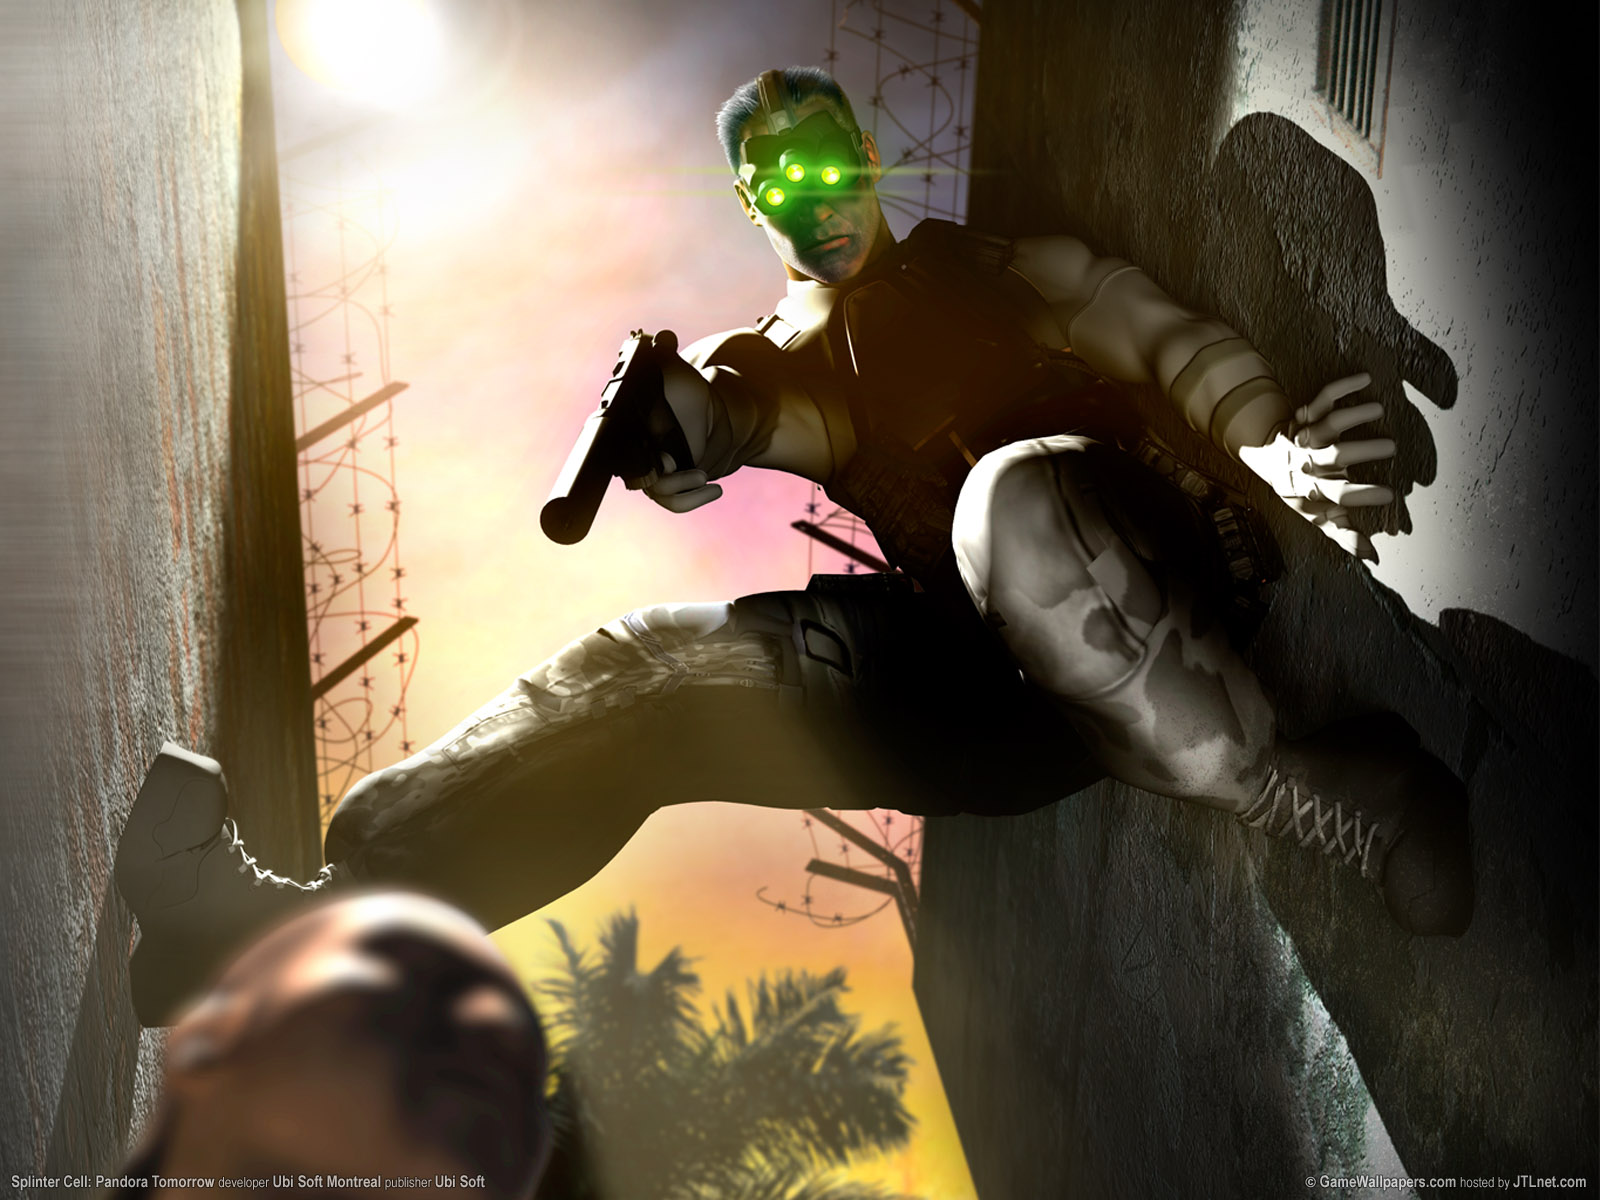 splinter cell pandora tomorrow wallpaper - photo #7